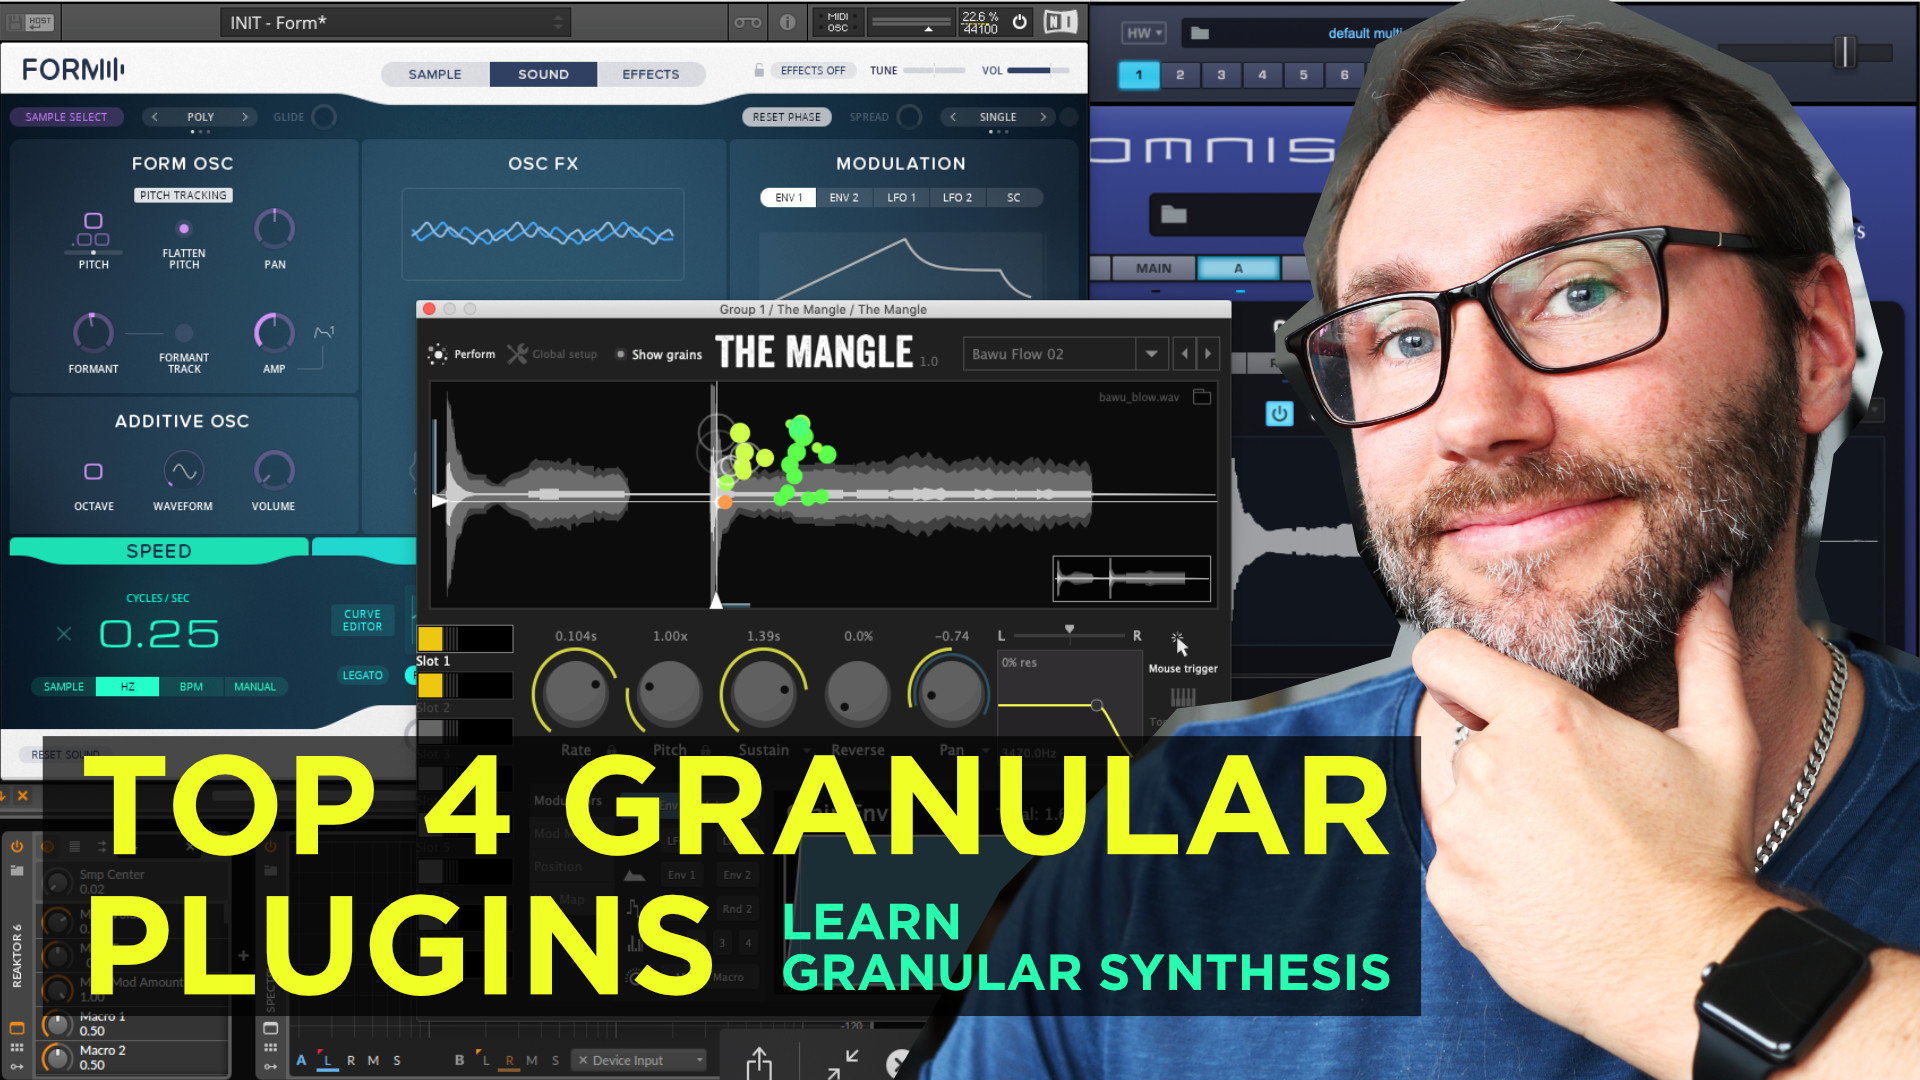 learn granular synthesis